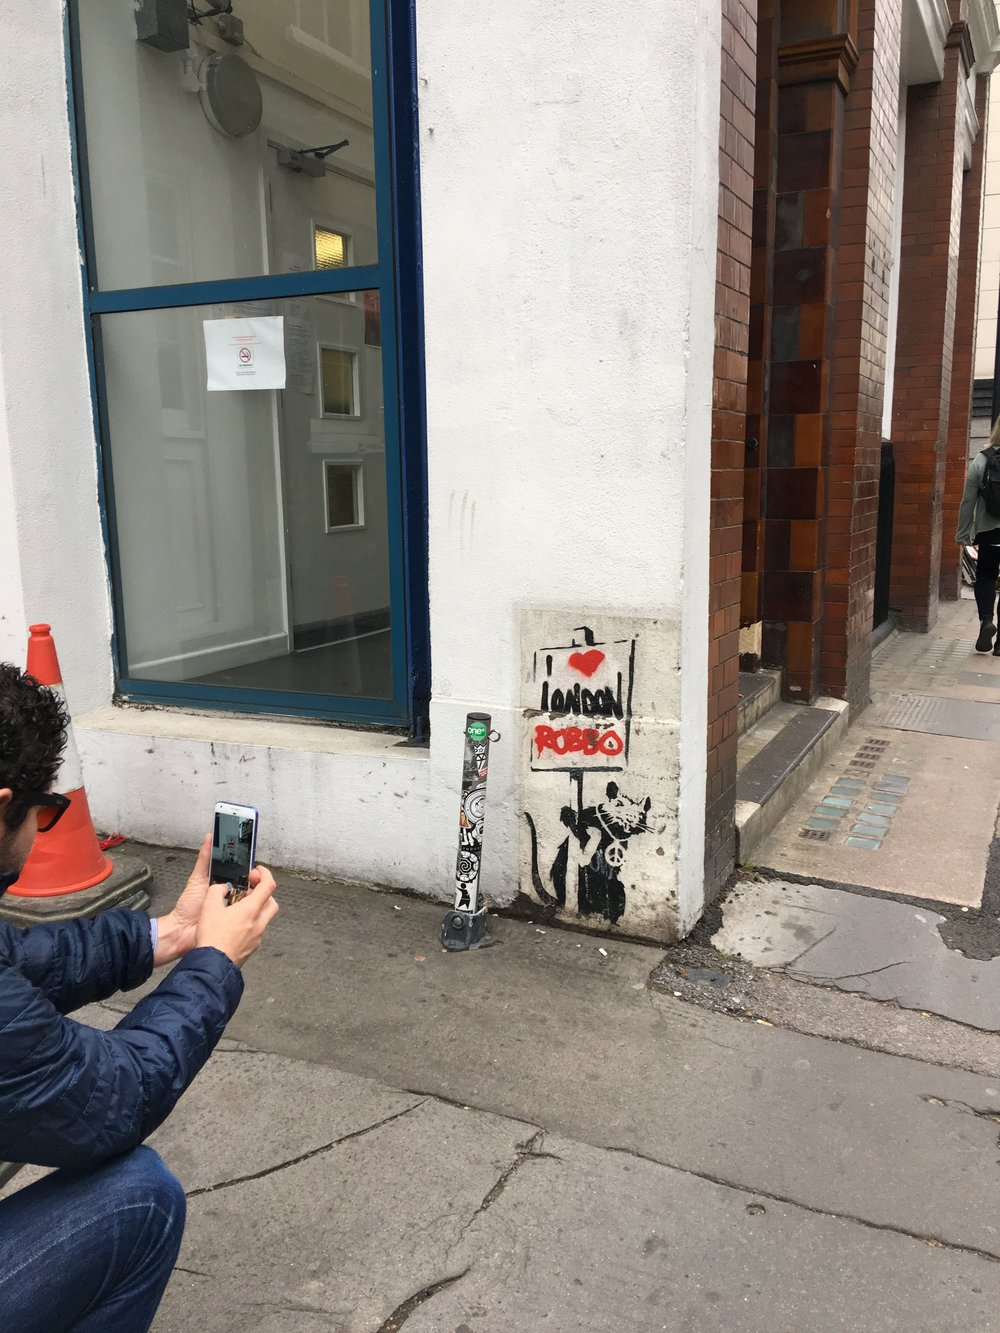 Not new, but still a real Banksy.